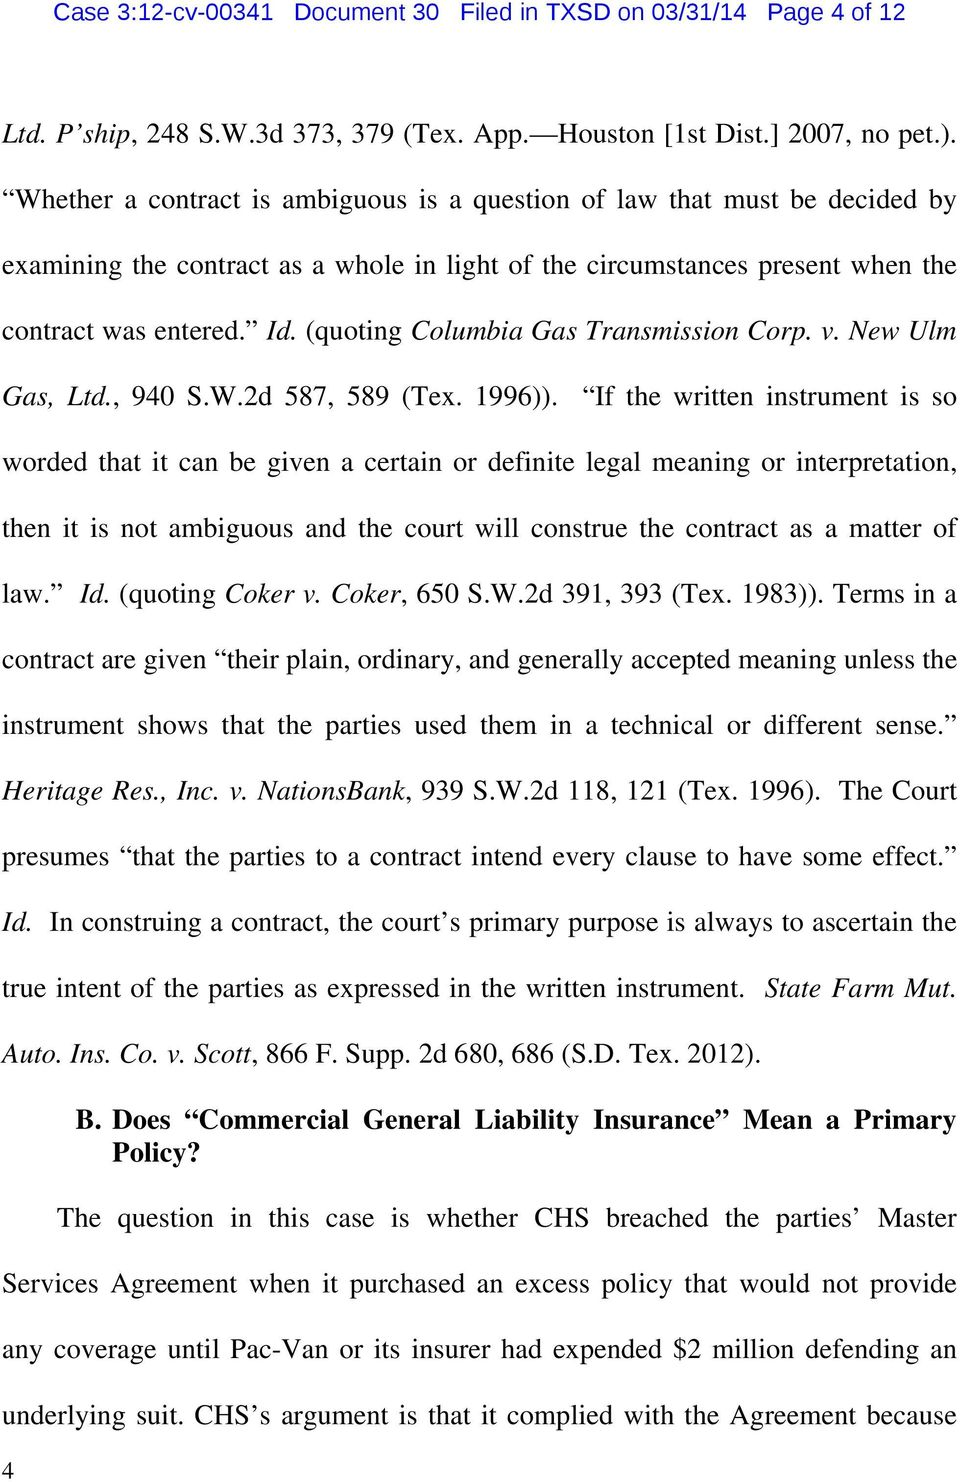 (quoting Columbia Gas Transmission Corp. v. New Ulm Gas, Ltd., 940 S.W.2d 587, 589 (Tex. 1996)).